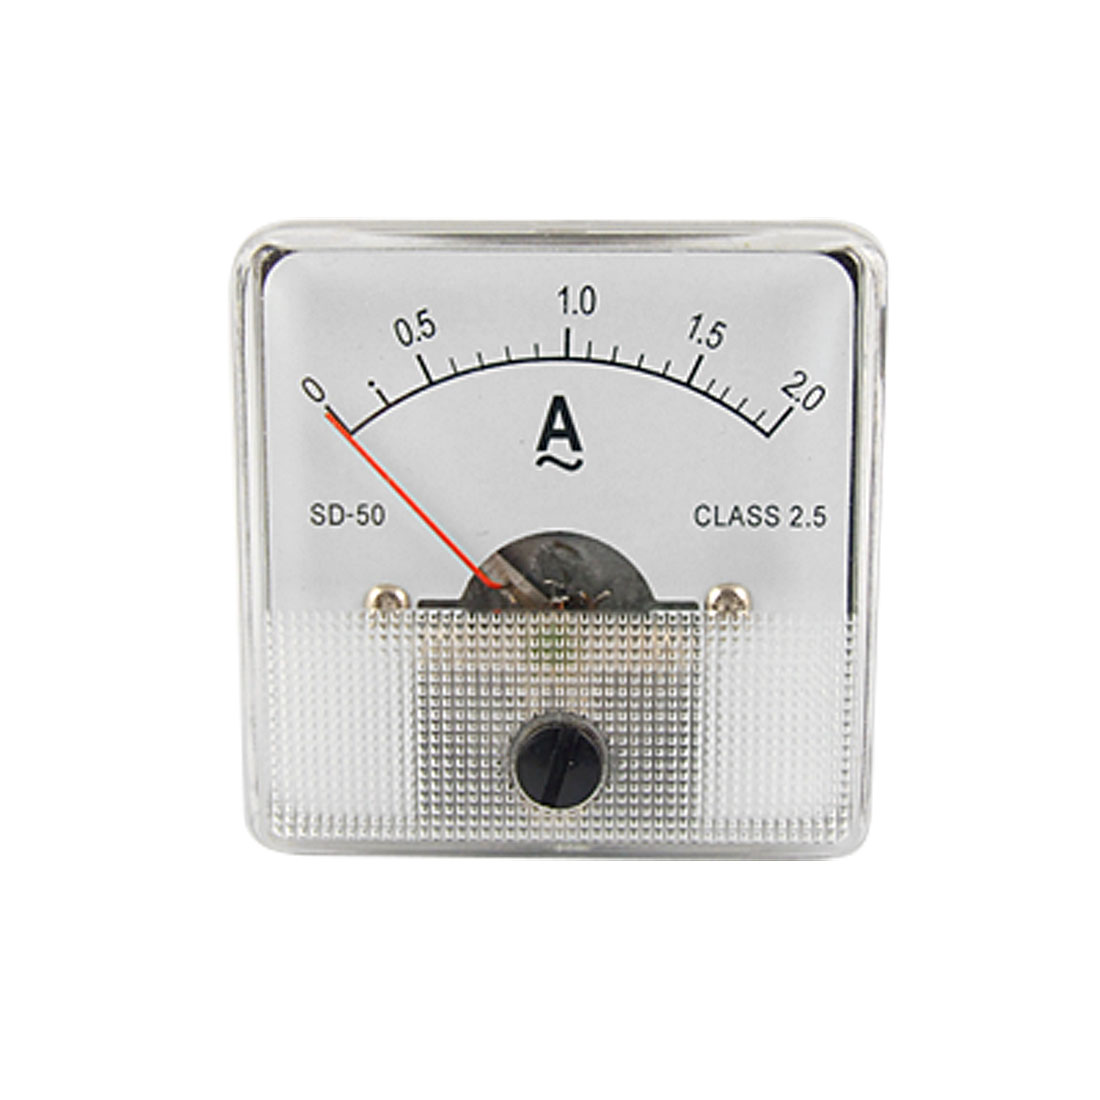 SD-50 AC 0-2A Analog Miniature Current Meter Gauge Ammeter